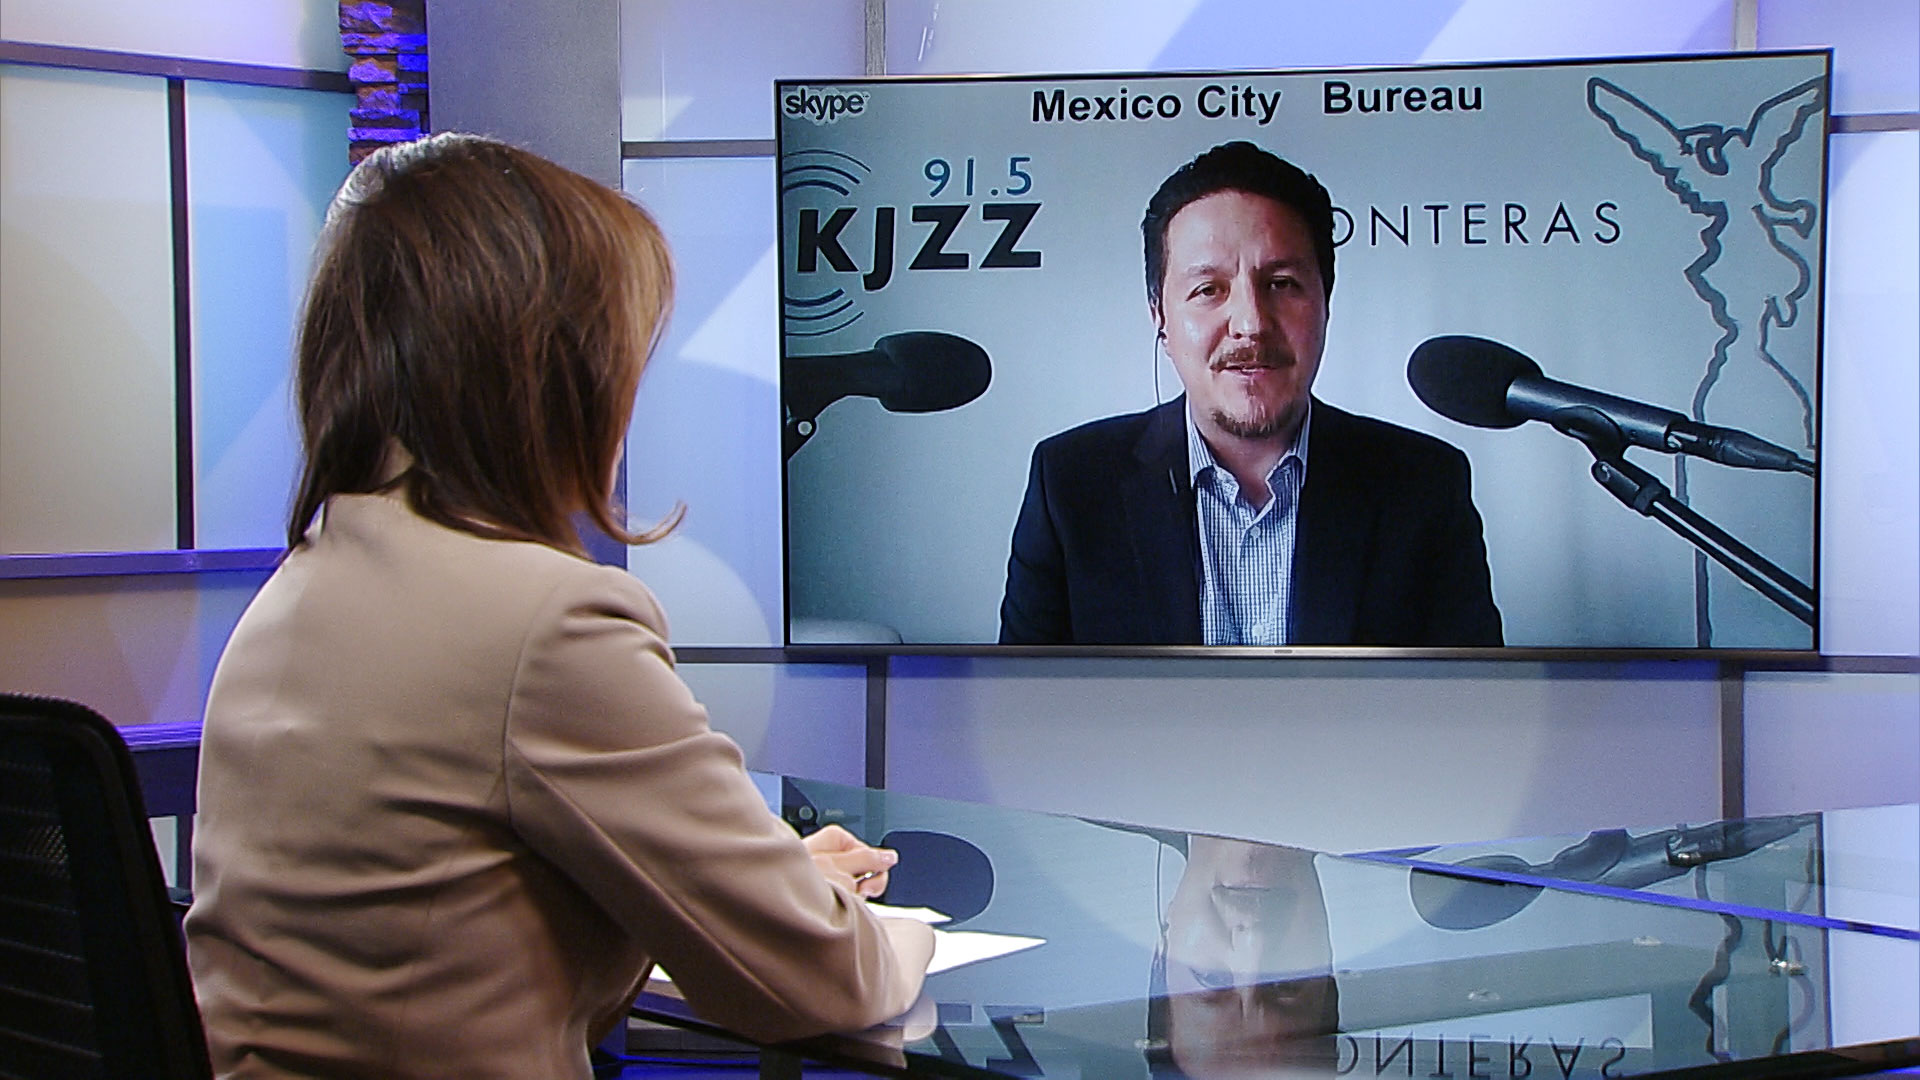 KJZZ Mexico City Bureau Chief Rodrigo Cervantes participates in a Skype interview with Arizona 360 host Lorraine Rivera.